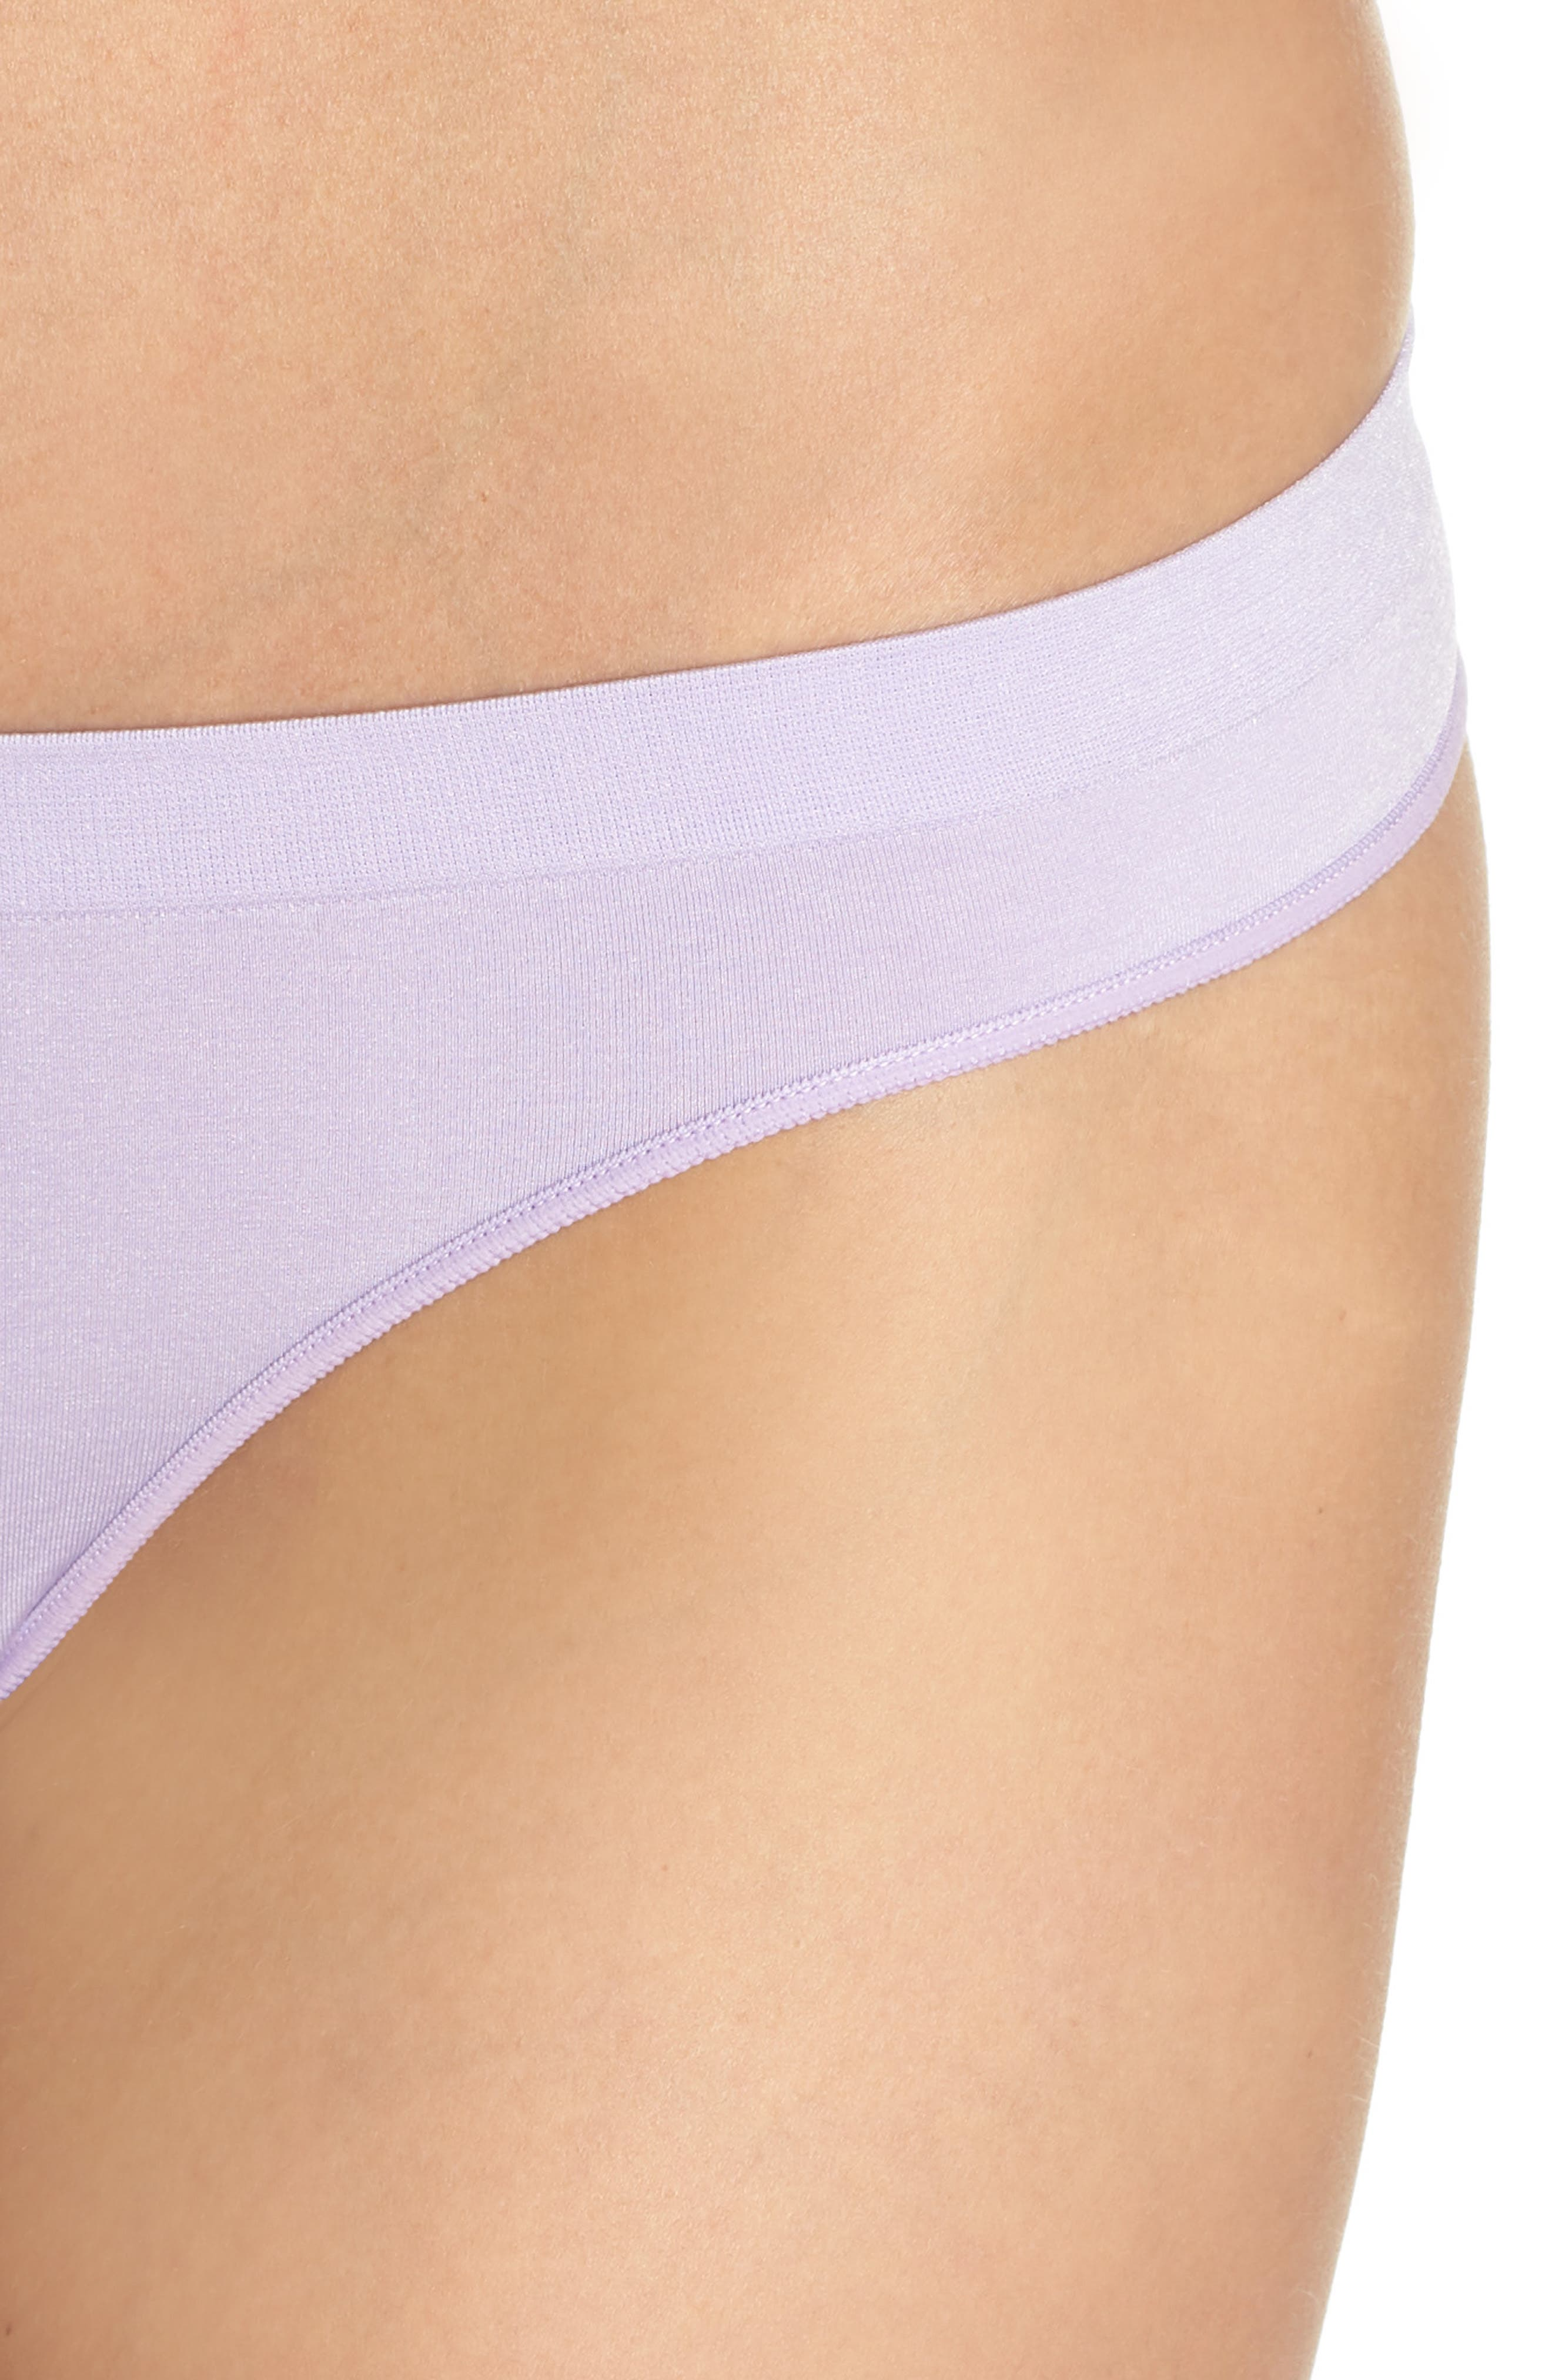 Stretch Thong,                             Alternate thumbnail 7, color,                             Purple Rose Heather